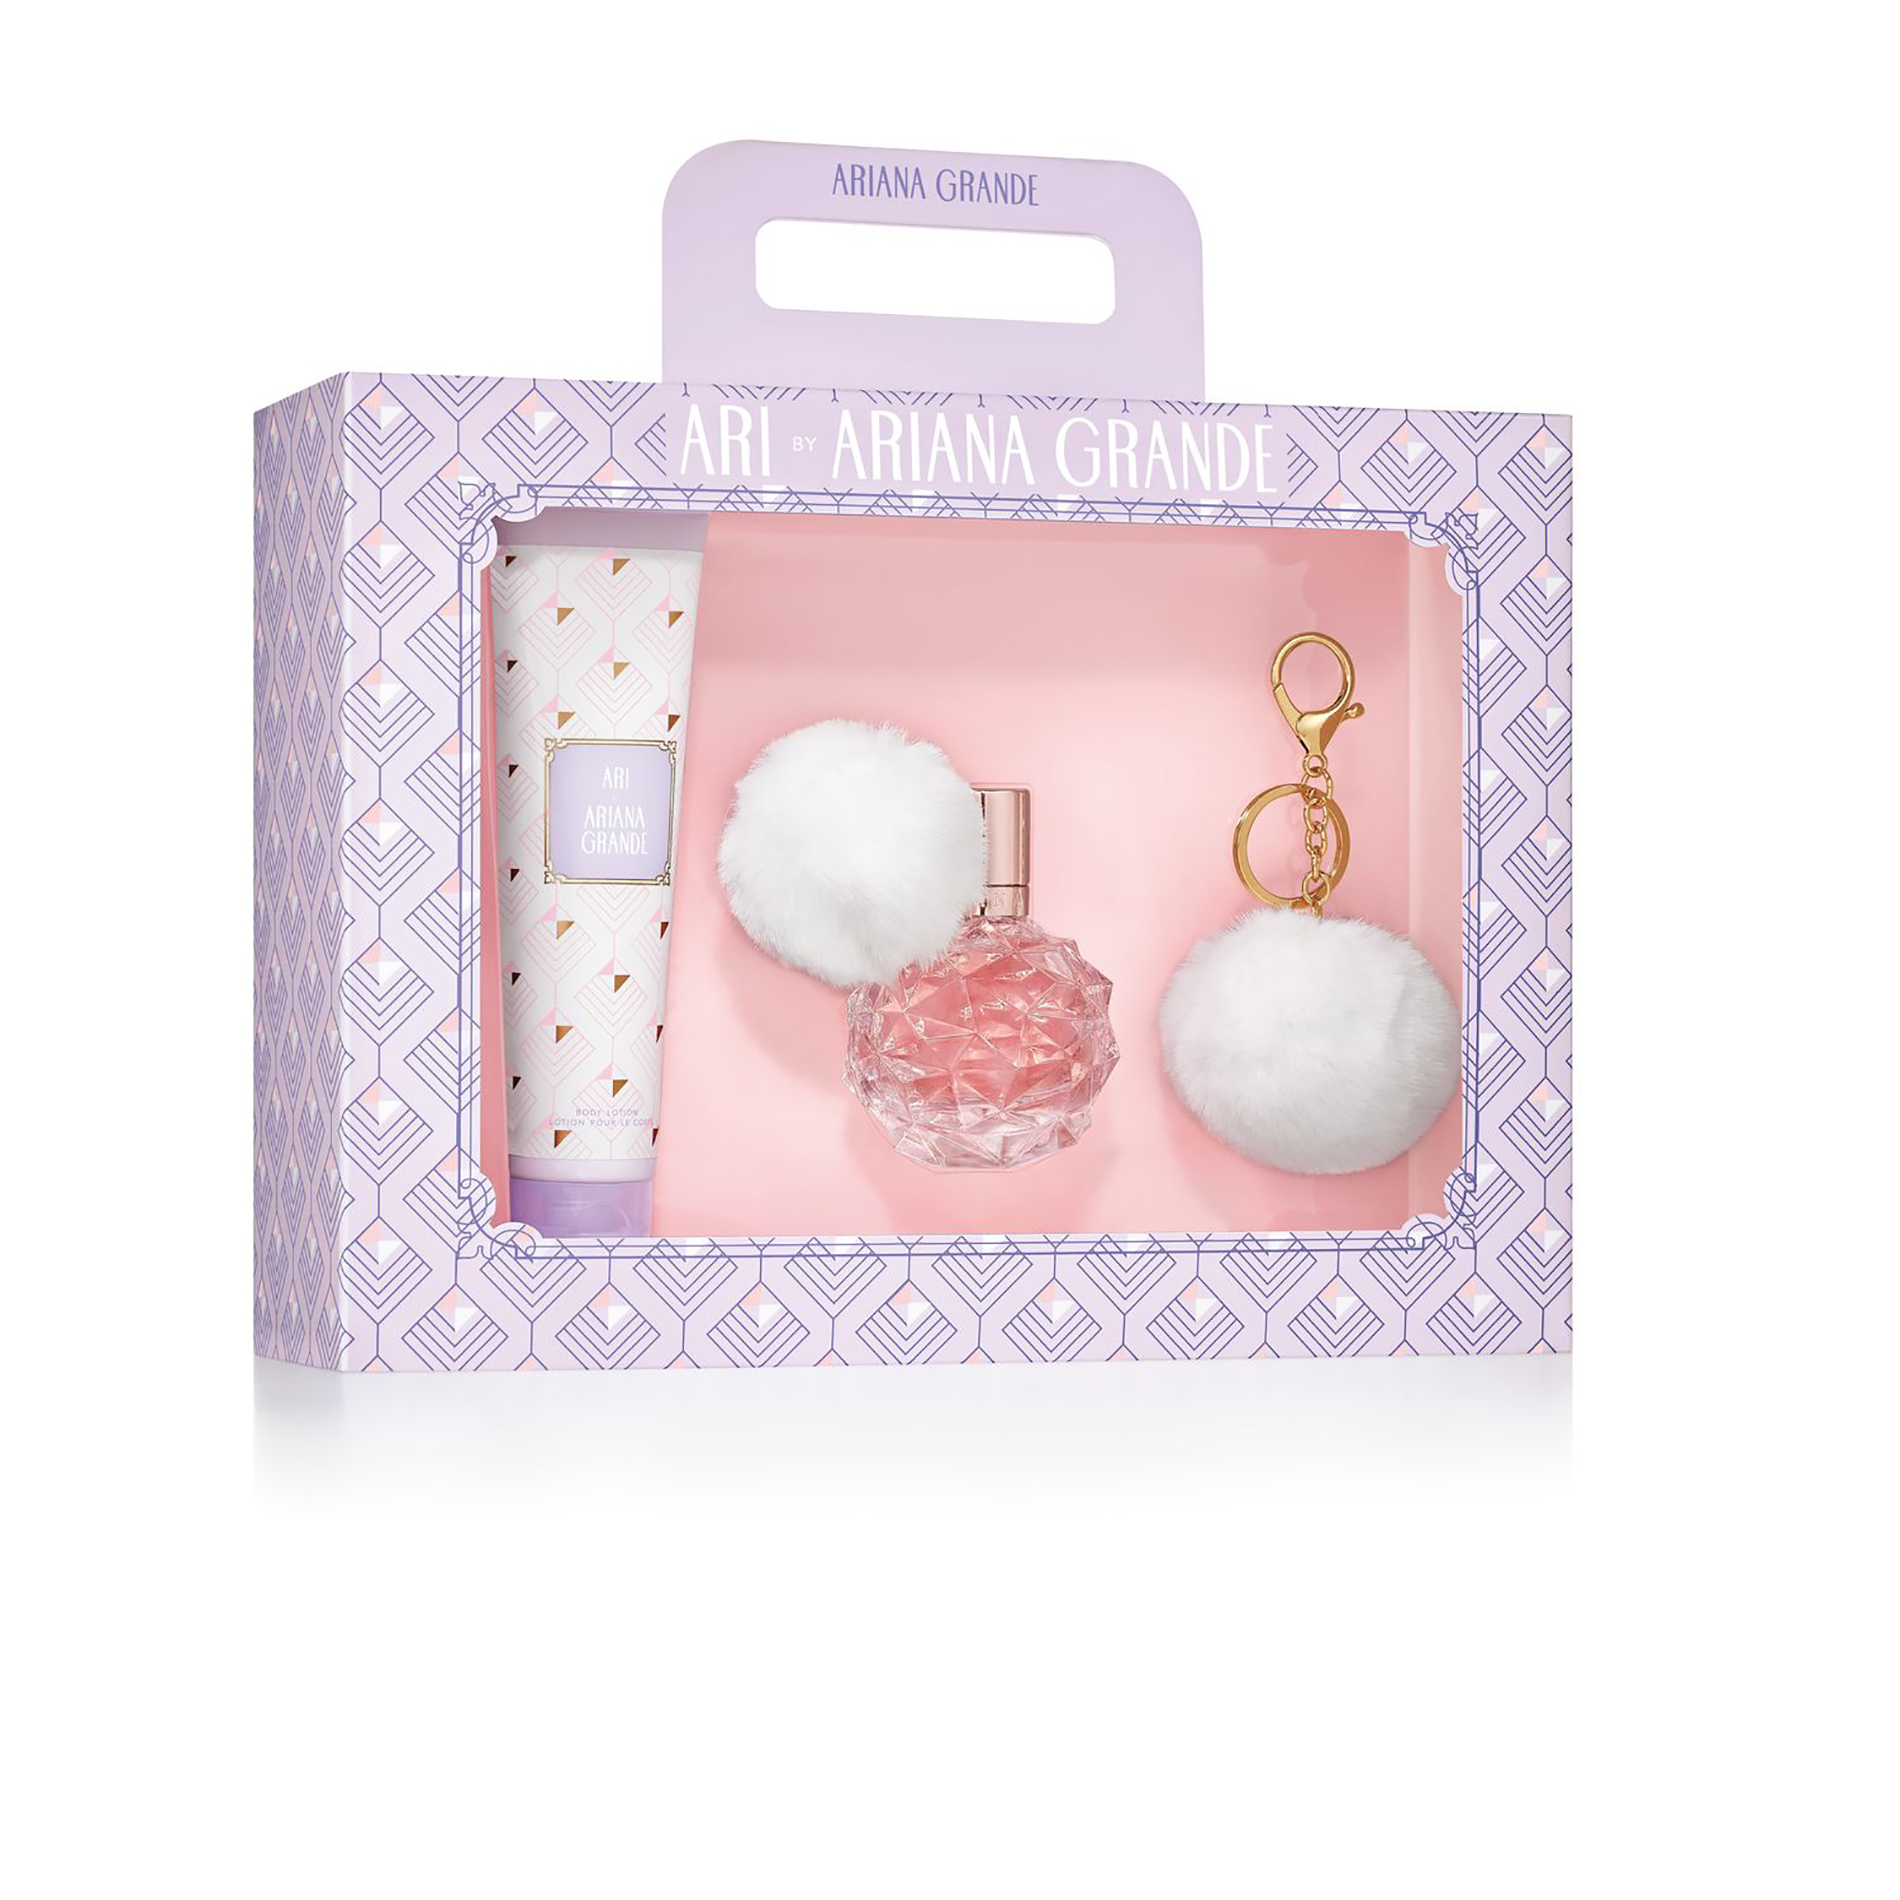 Ariana Grande Fragrance Set